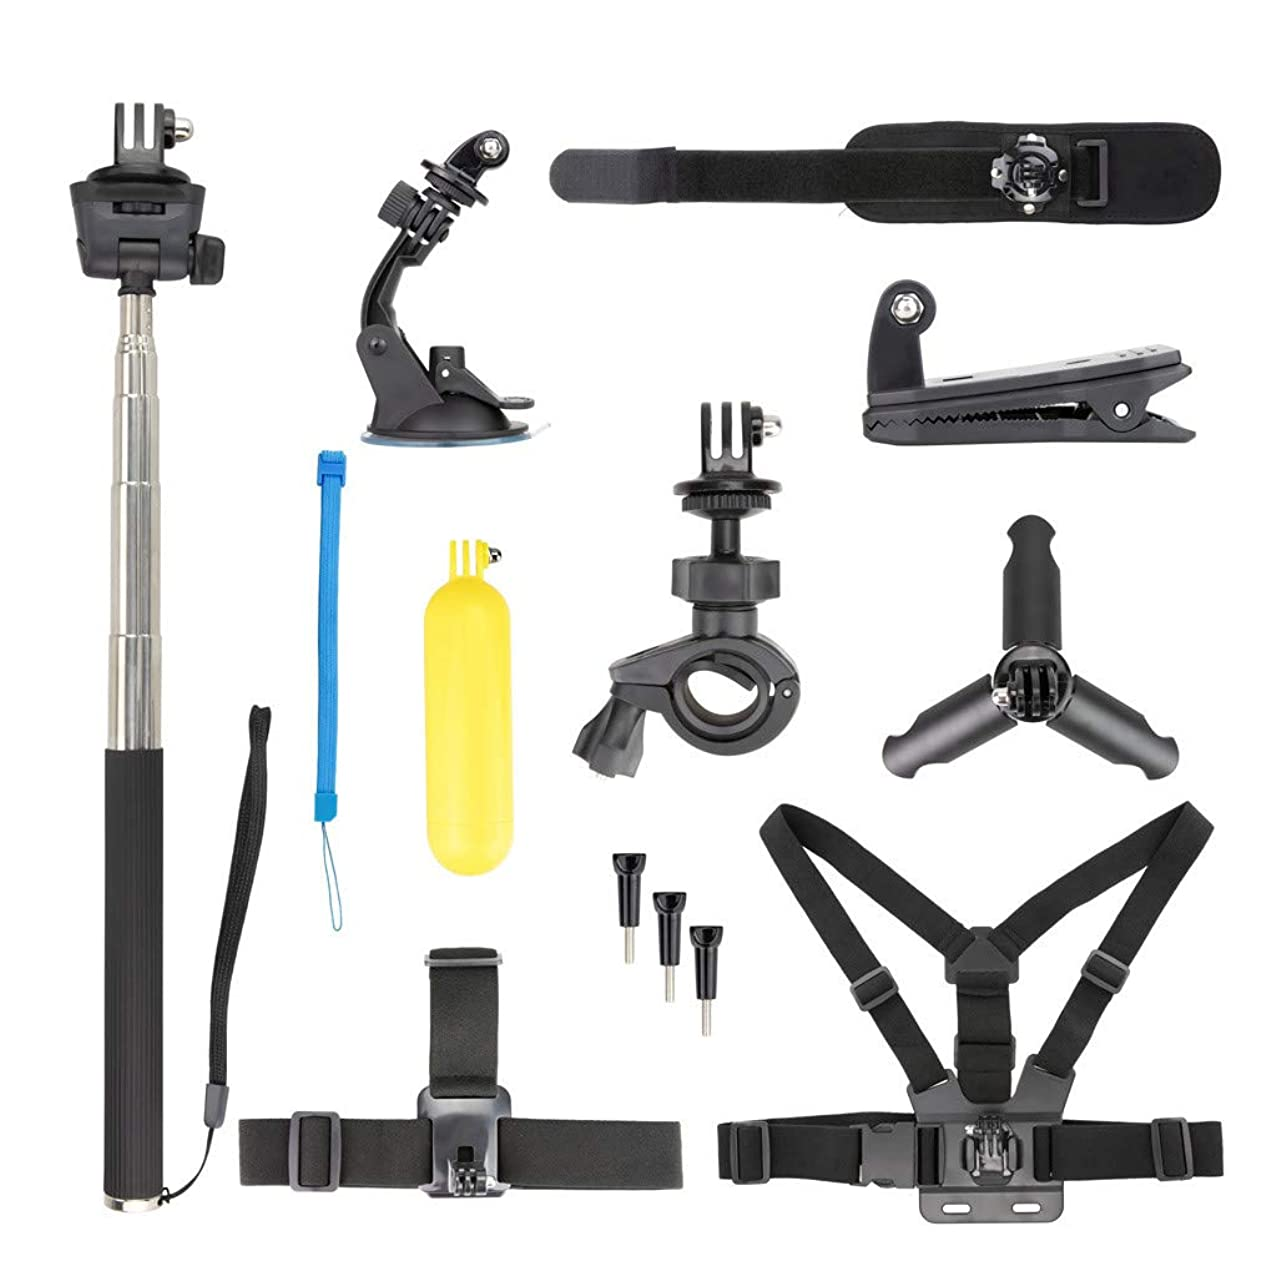 Ackful??Sports Cam Accessories Kit Bundle for DJI OSMO Action Camera Accessories